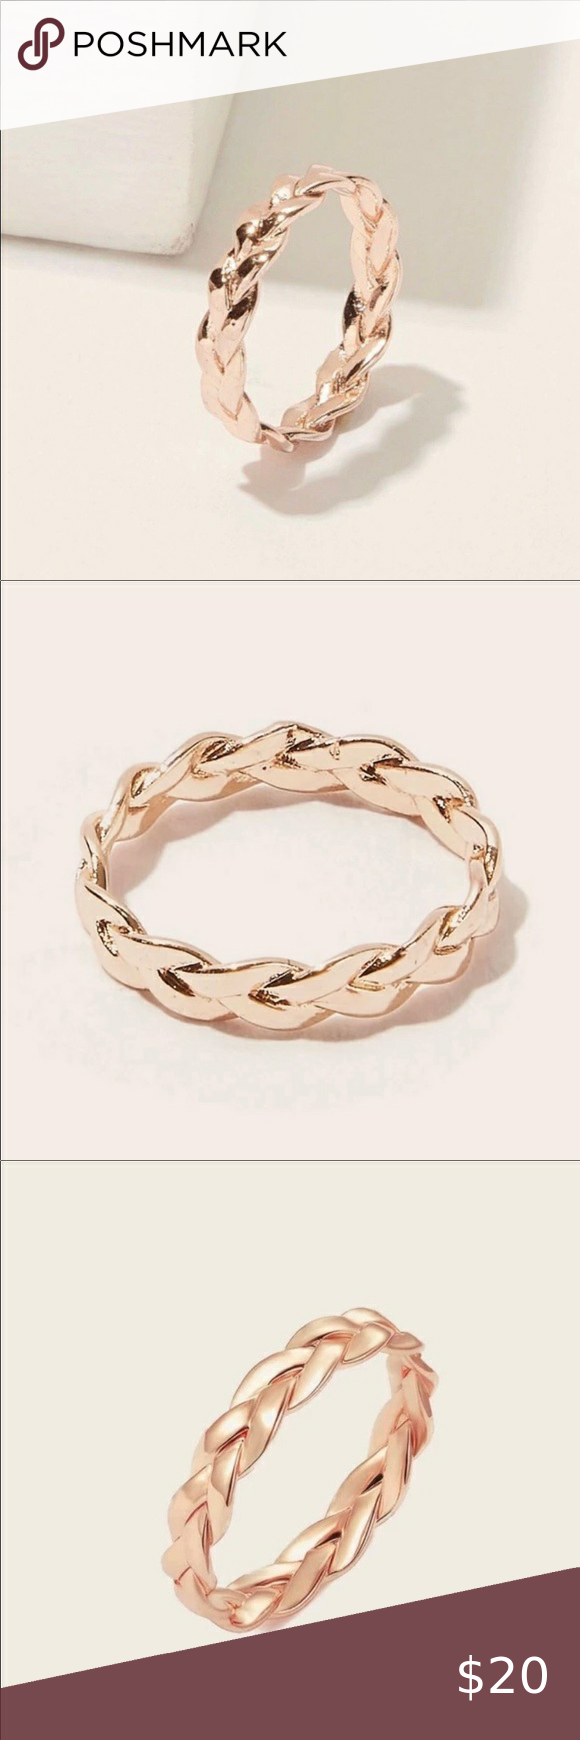 Rose gold braided bands in 2020 Womens jewelry rings